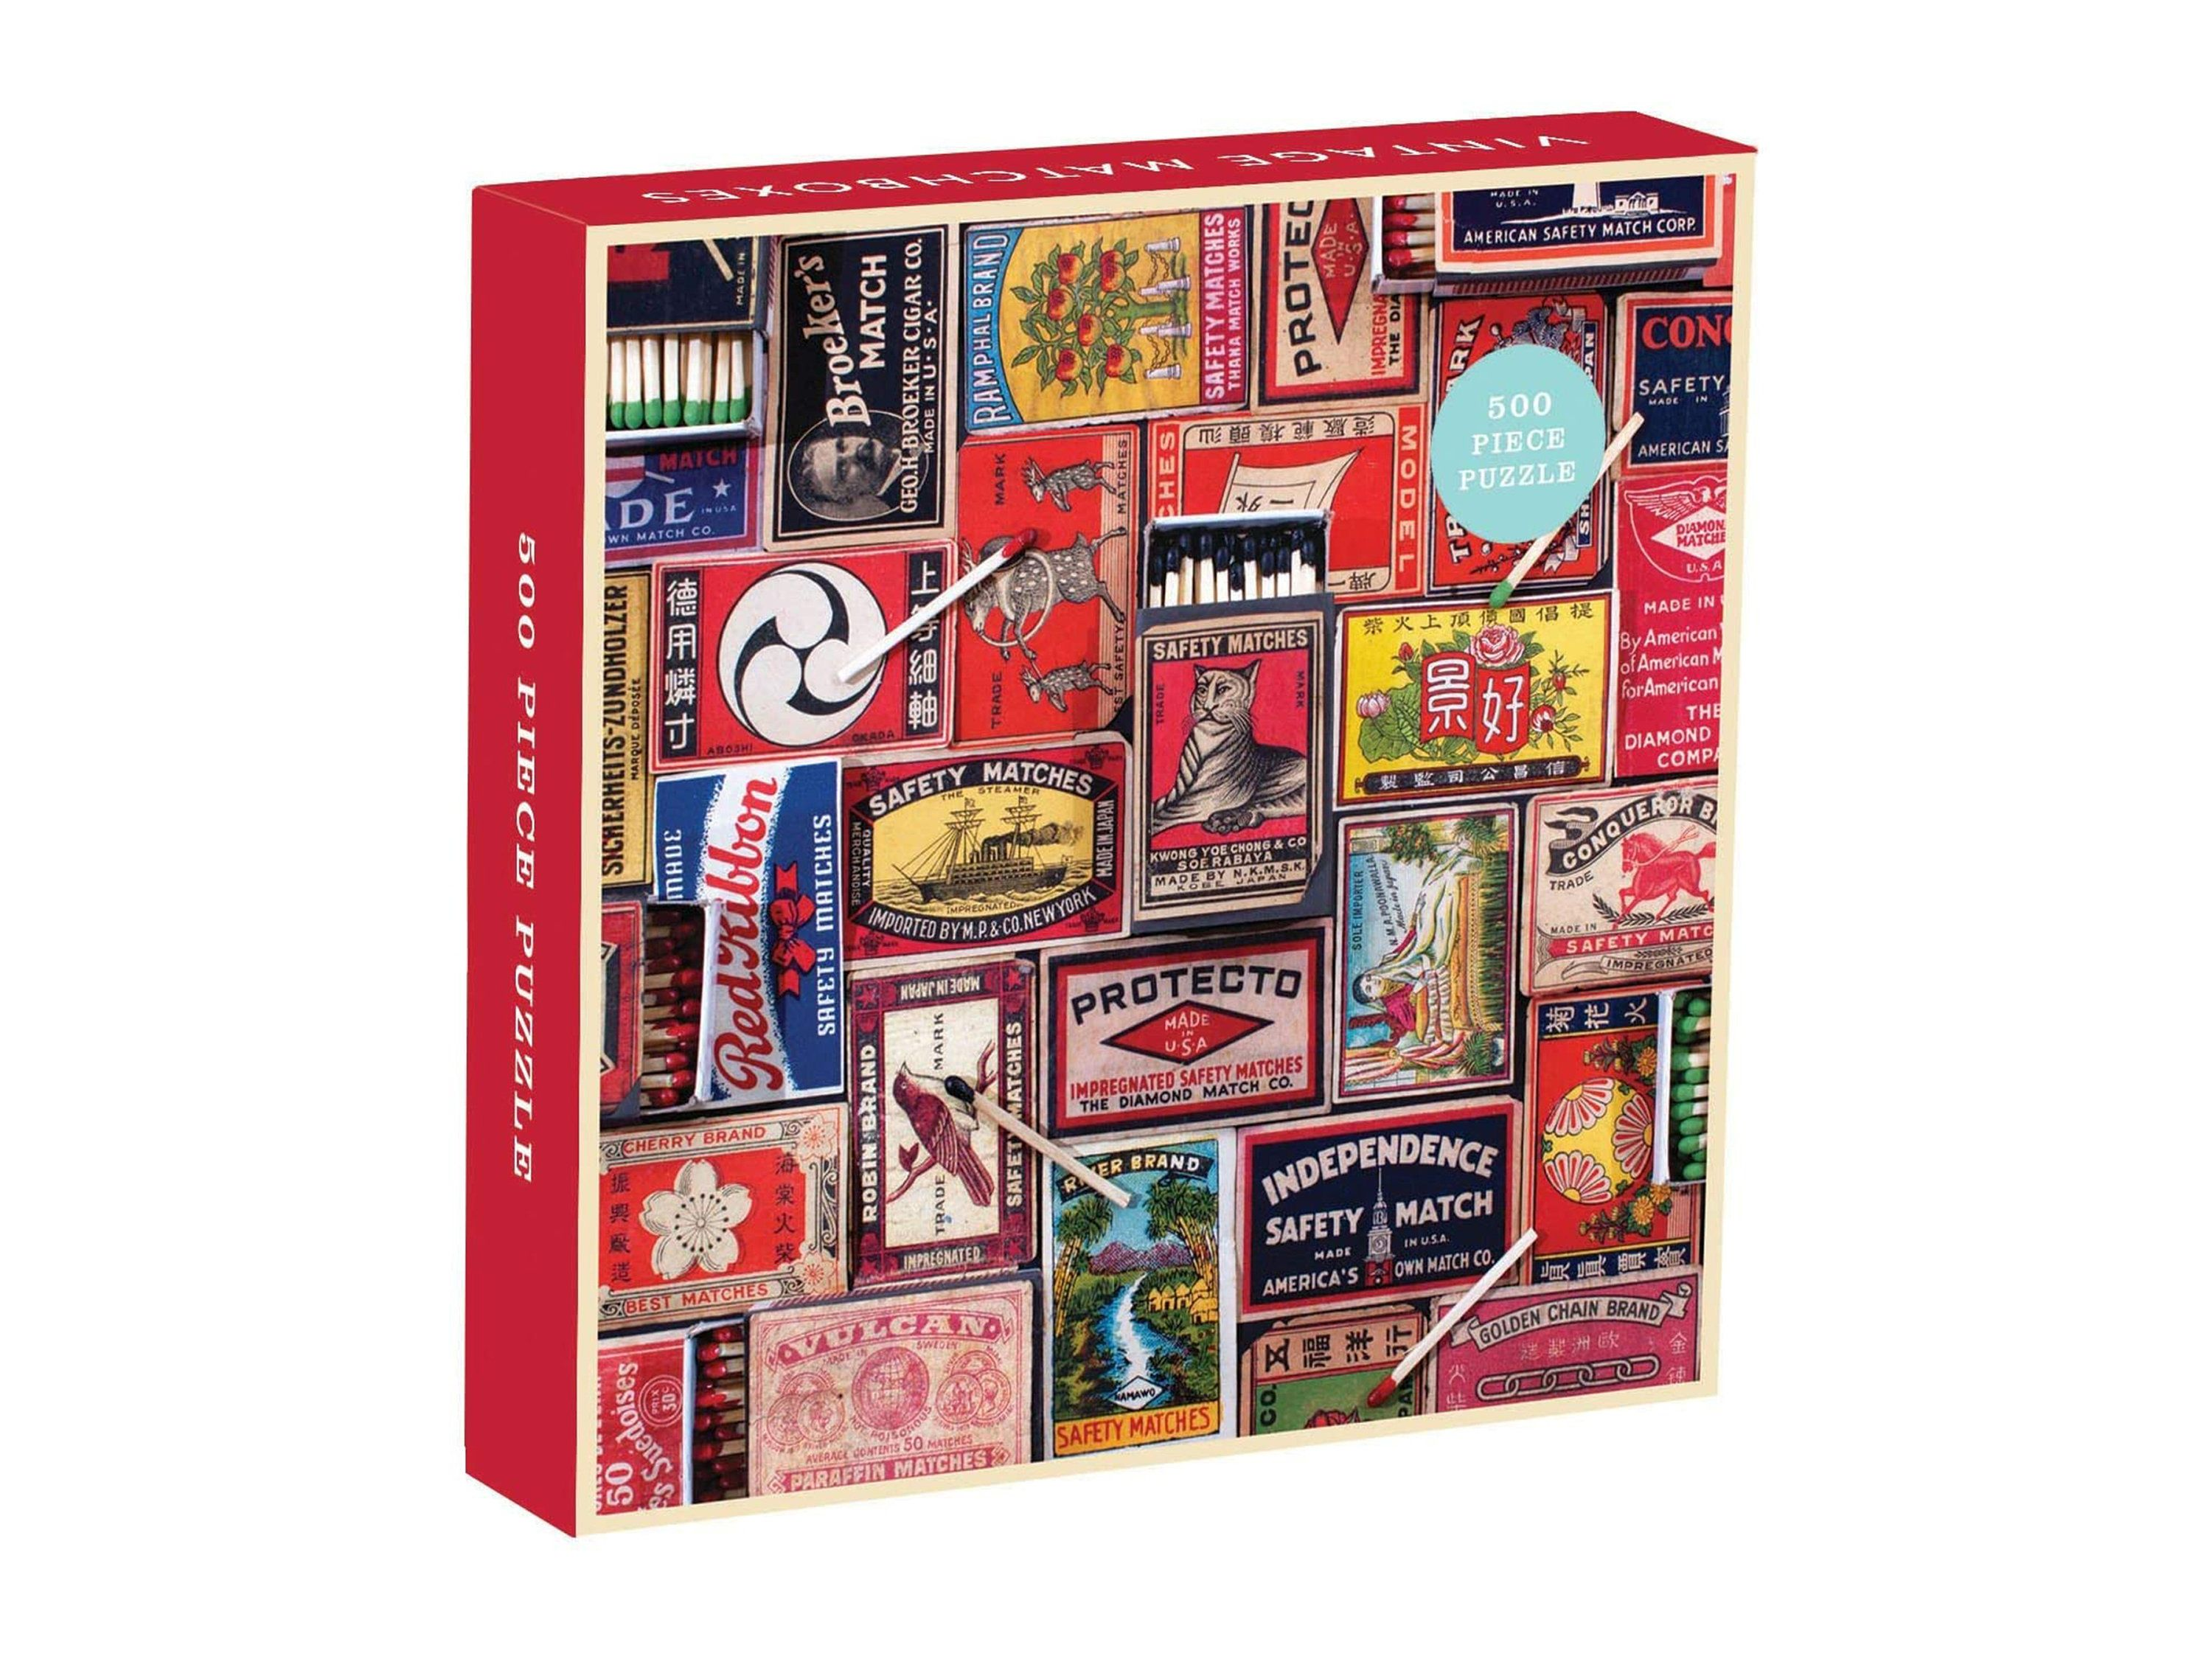 Vintage Matchboxes 500 Piece Puzzle Brand New In 2020 500 Piece Puzzles Puzzle Pieces Matchbox